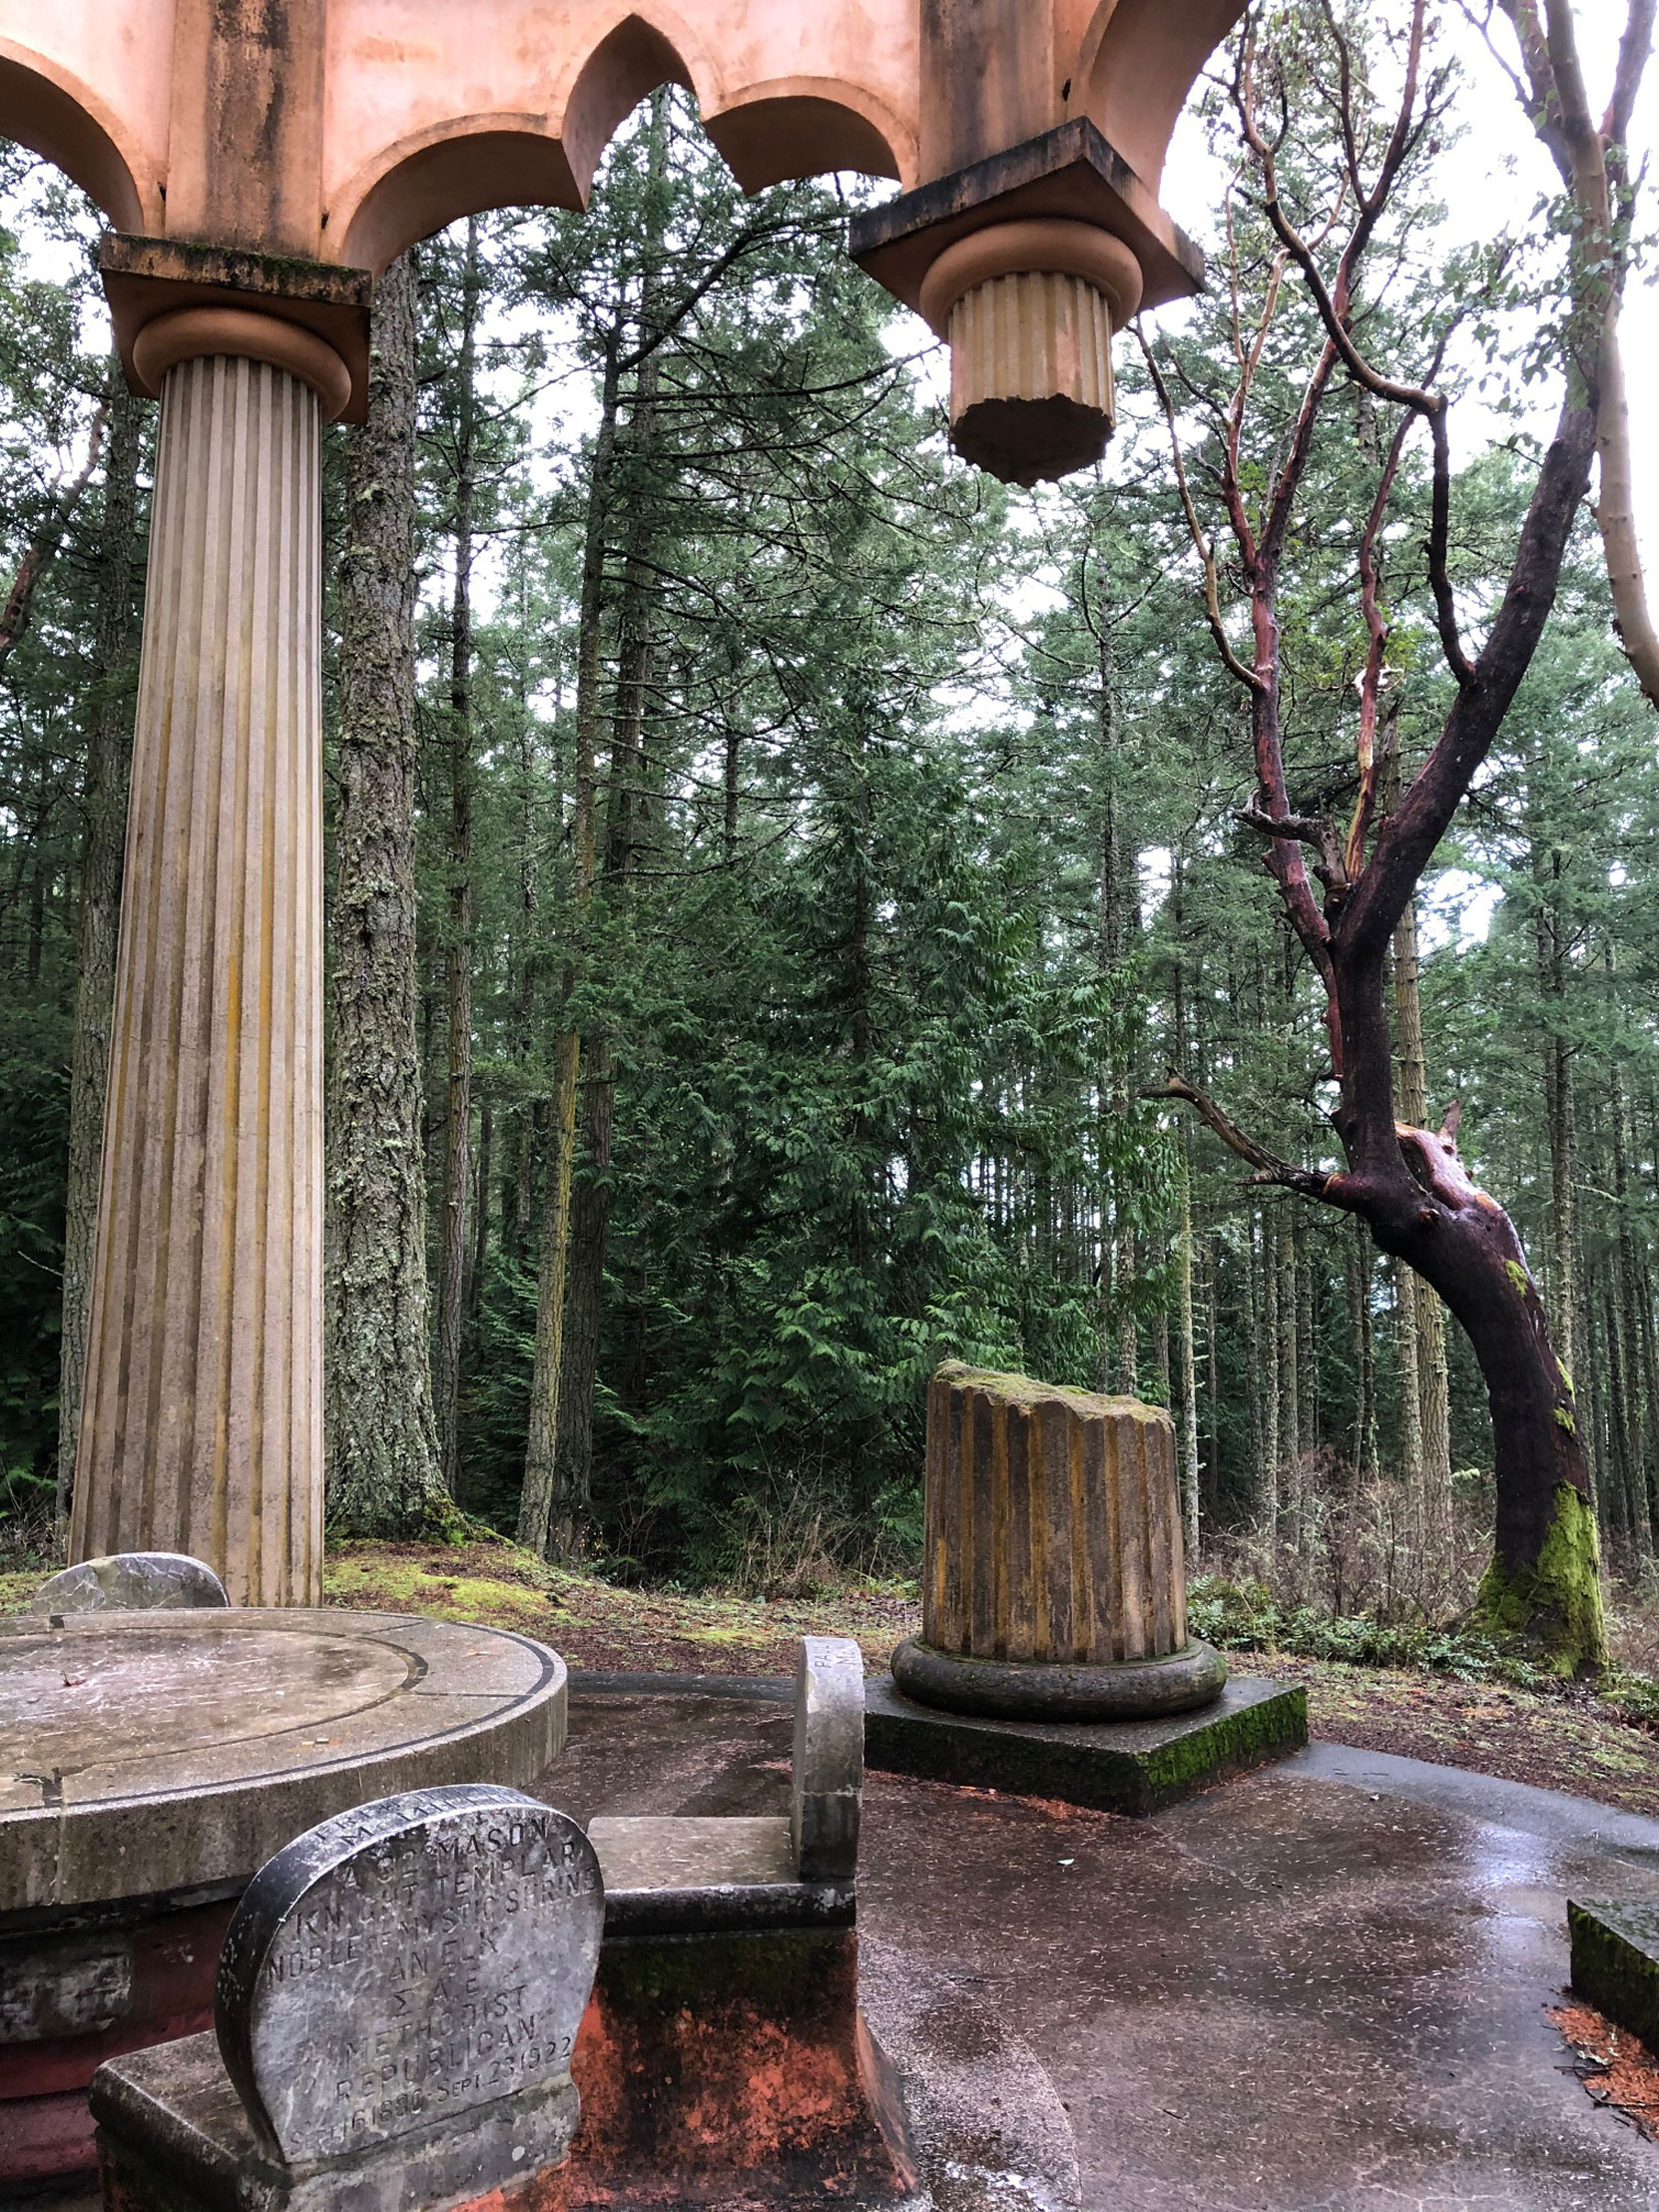 Broken Column at the McMillin Mausoleum, Roche Harbor, Washington. (photo by Mike Gains, V&Q, No.2)